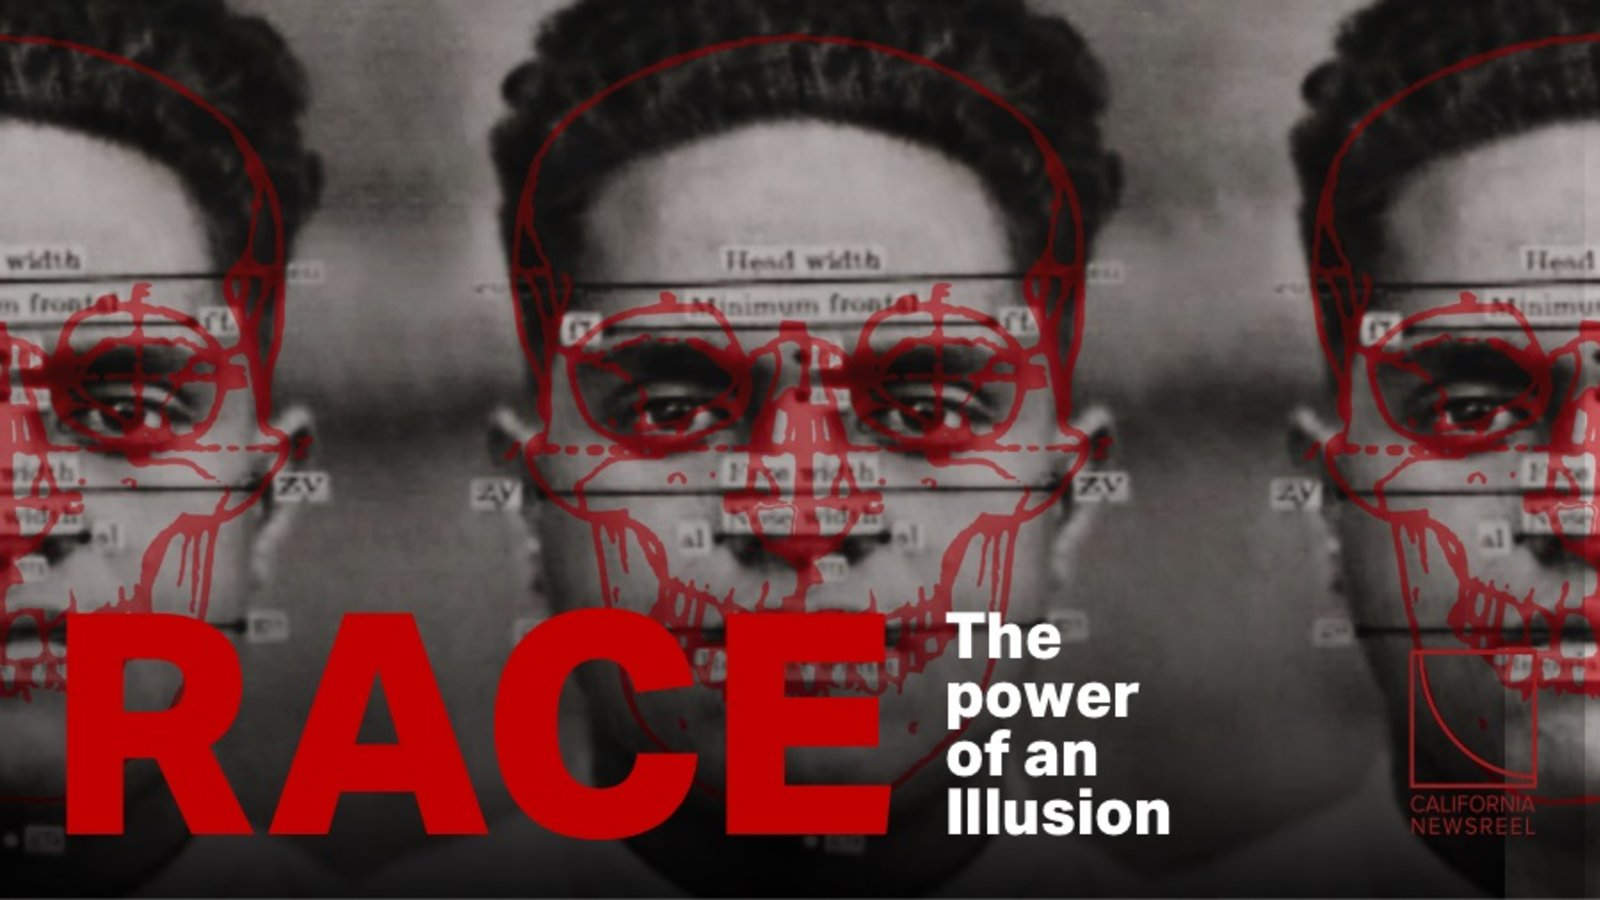 Race - The Power of an Illusion